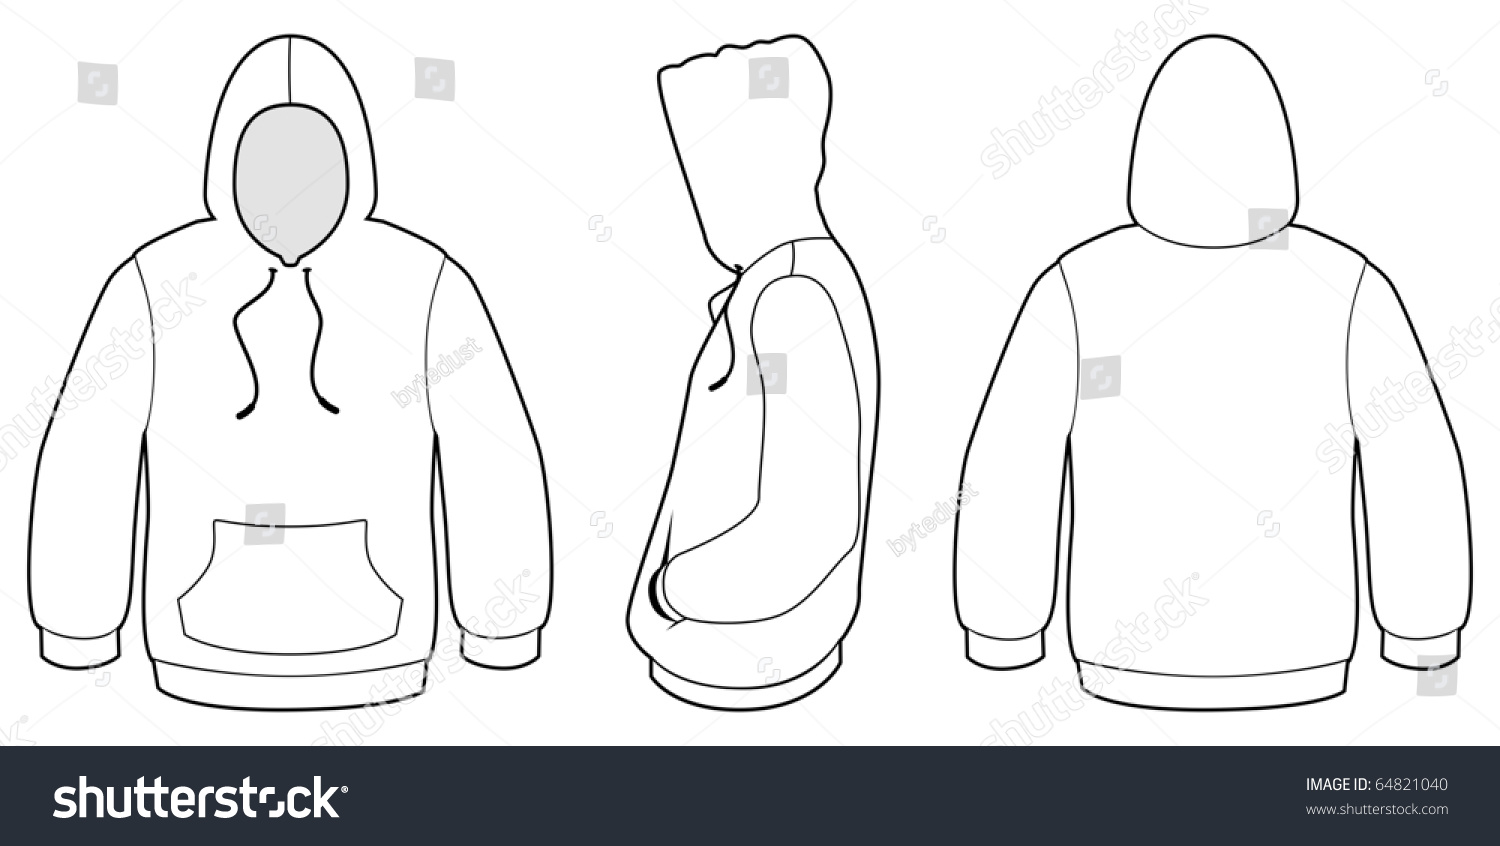 Template vector illustration blank hooded sweater stock vector template vector illustration of a blank hooded sweater all objects and details are isolated pronofoot35fo Choice Image